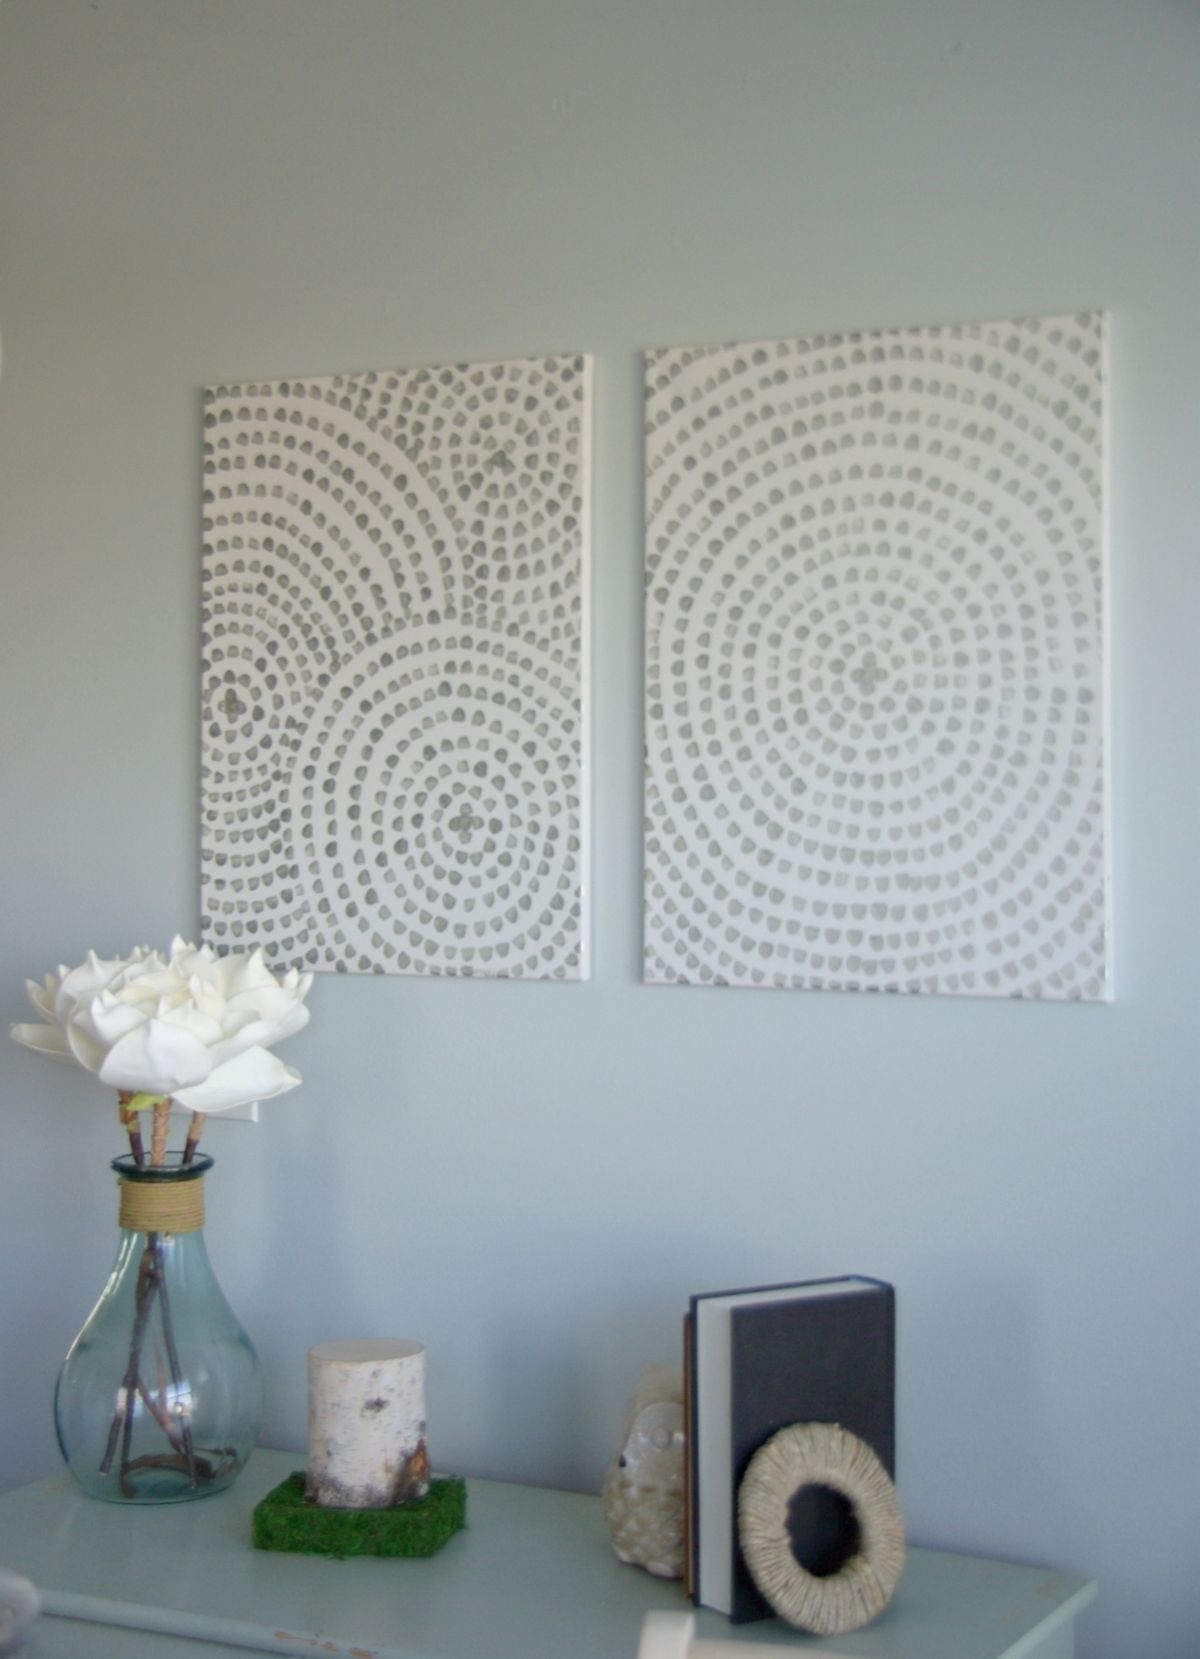 Diy Canvas Wall Art - A Low Cost Way To Add Art To Your Home | My with Best and Newest Wall Art Diy